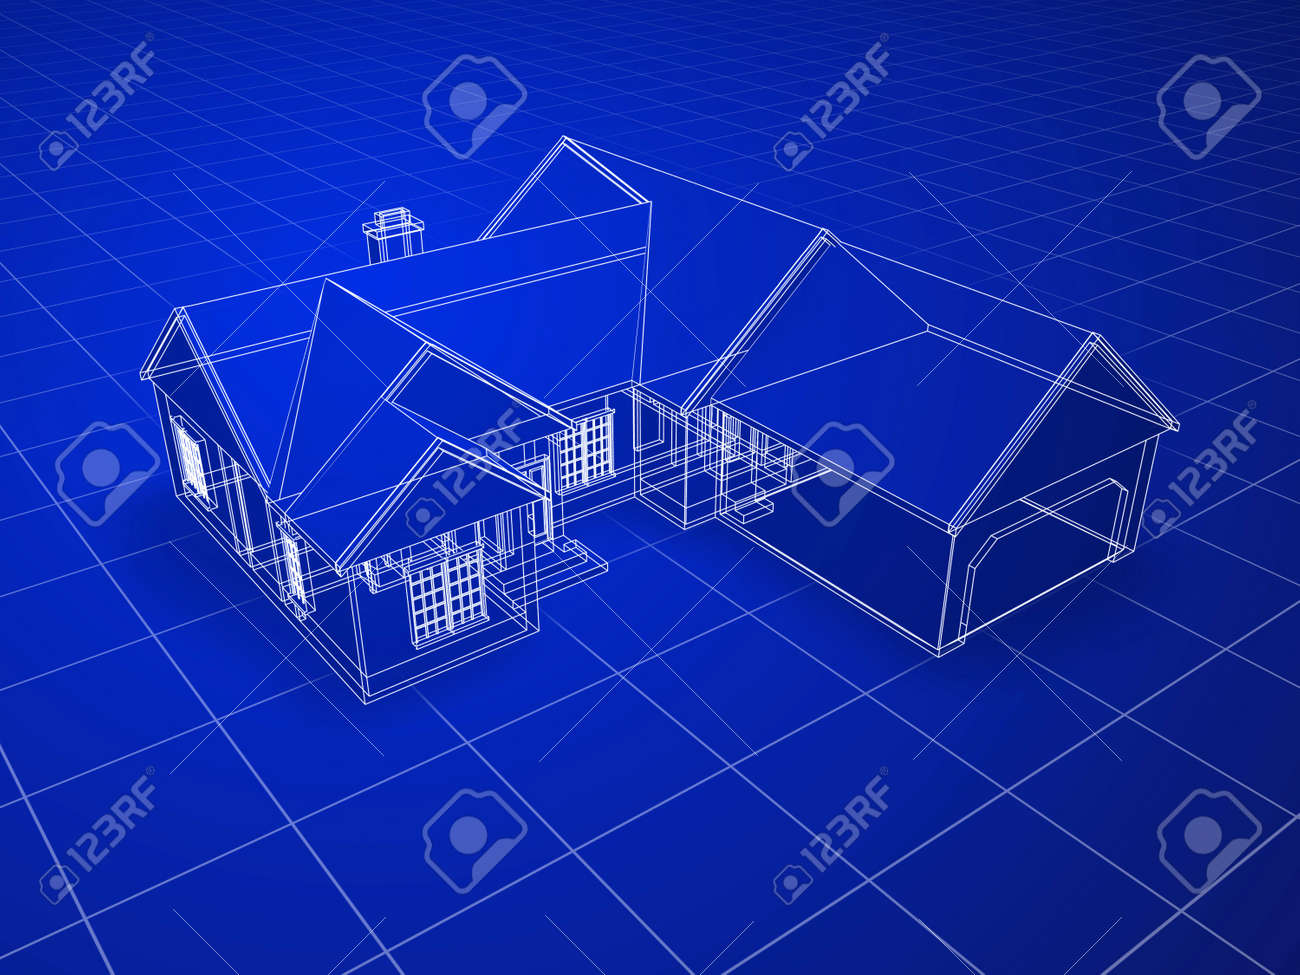 Blueprint style 3d rendered house white outlines on blue background blueprint style 3d rendered house white outlines on blue background stock photo 14637119 malvernweather Images